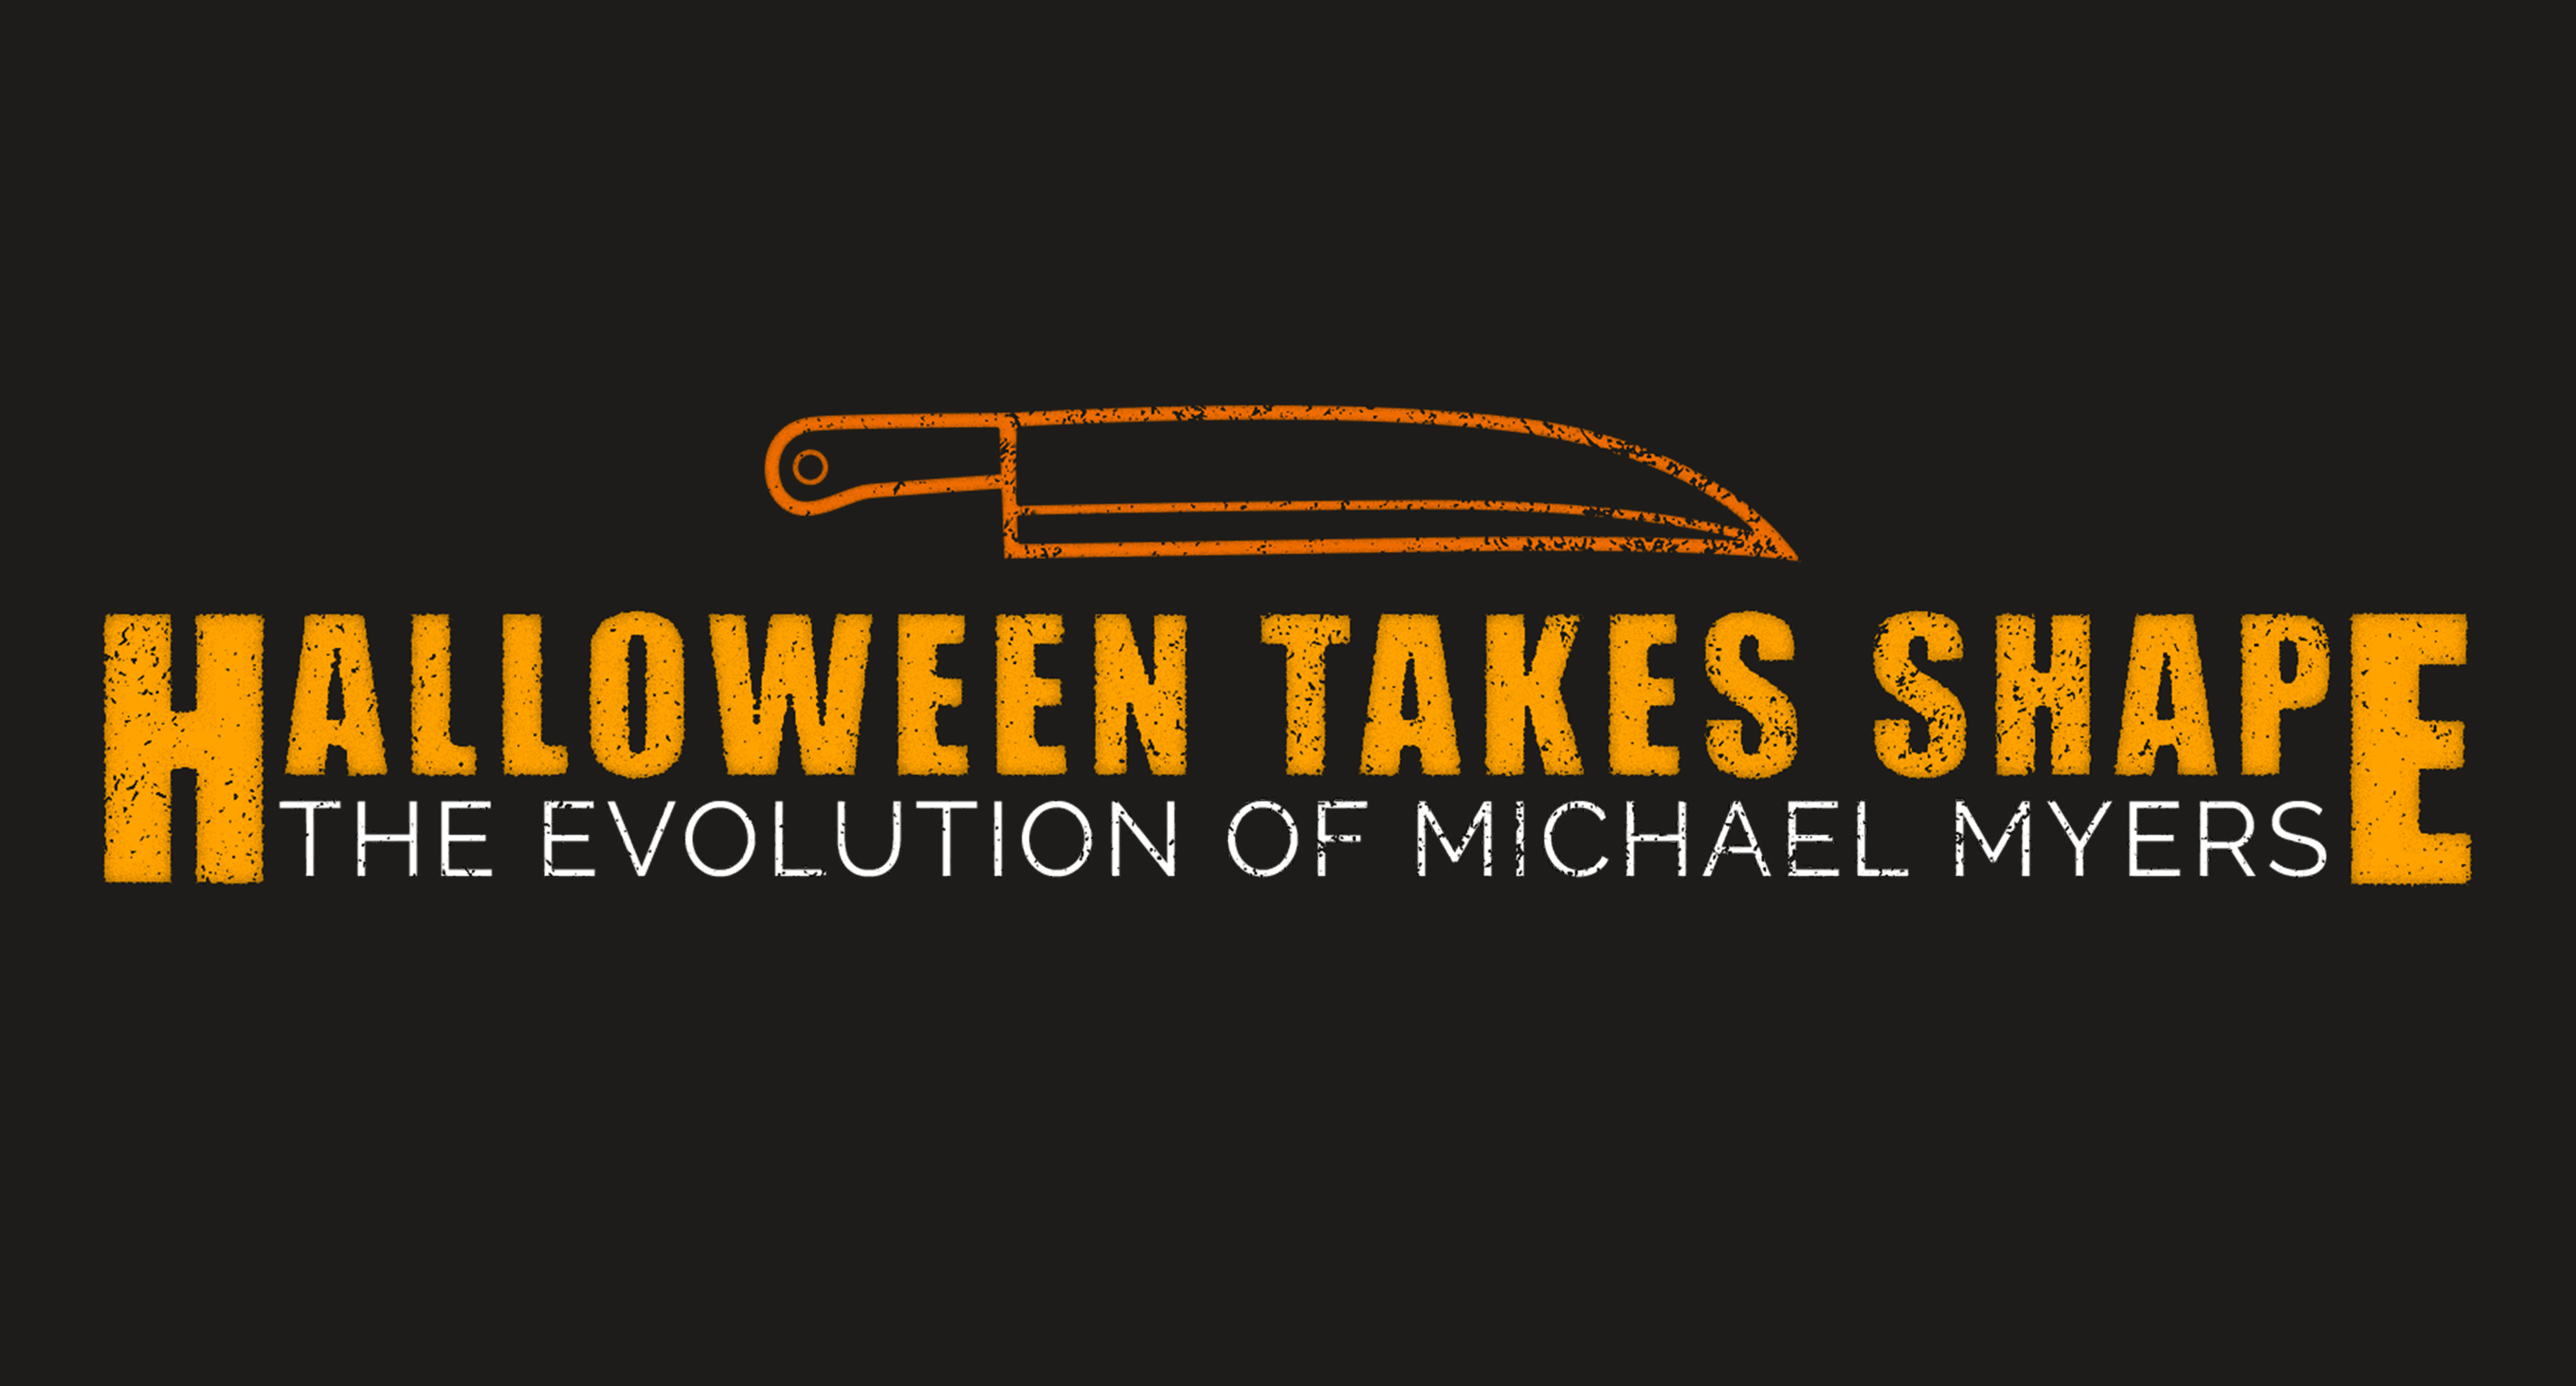 photo regarding Halloween Express Printable Coupon called Halloween Normally takes Condition: The Evolution of Michael Myers